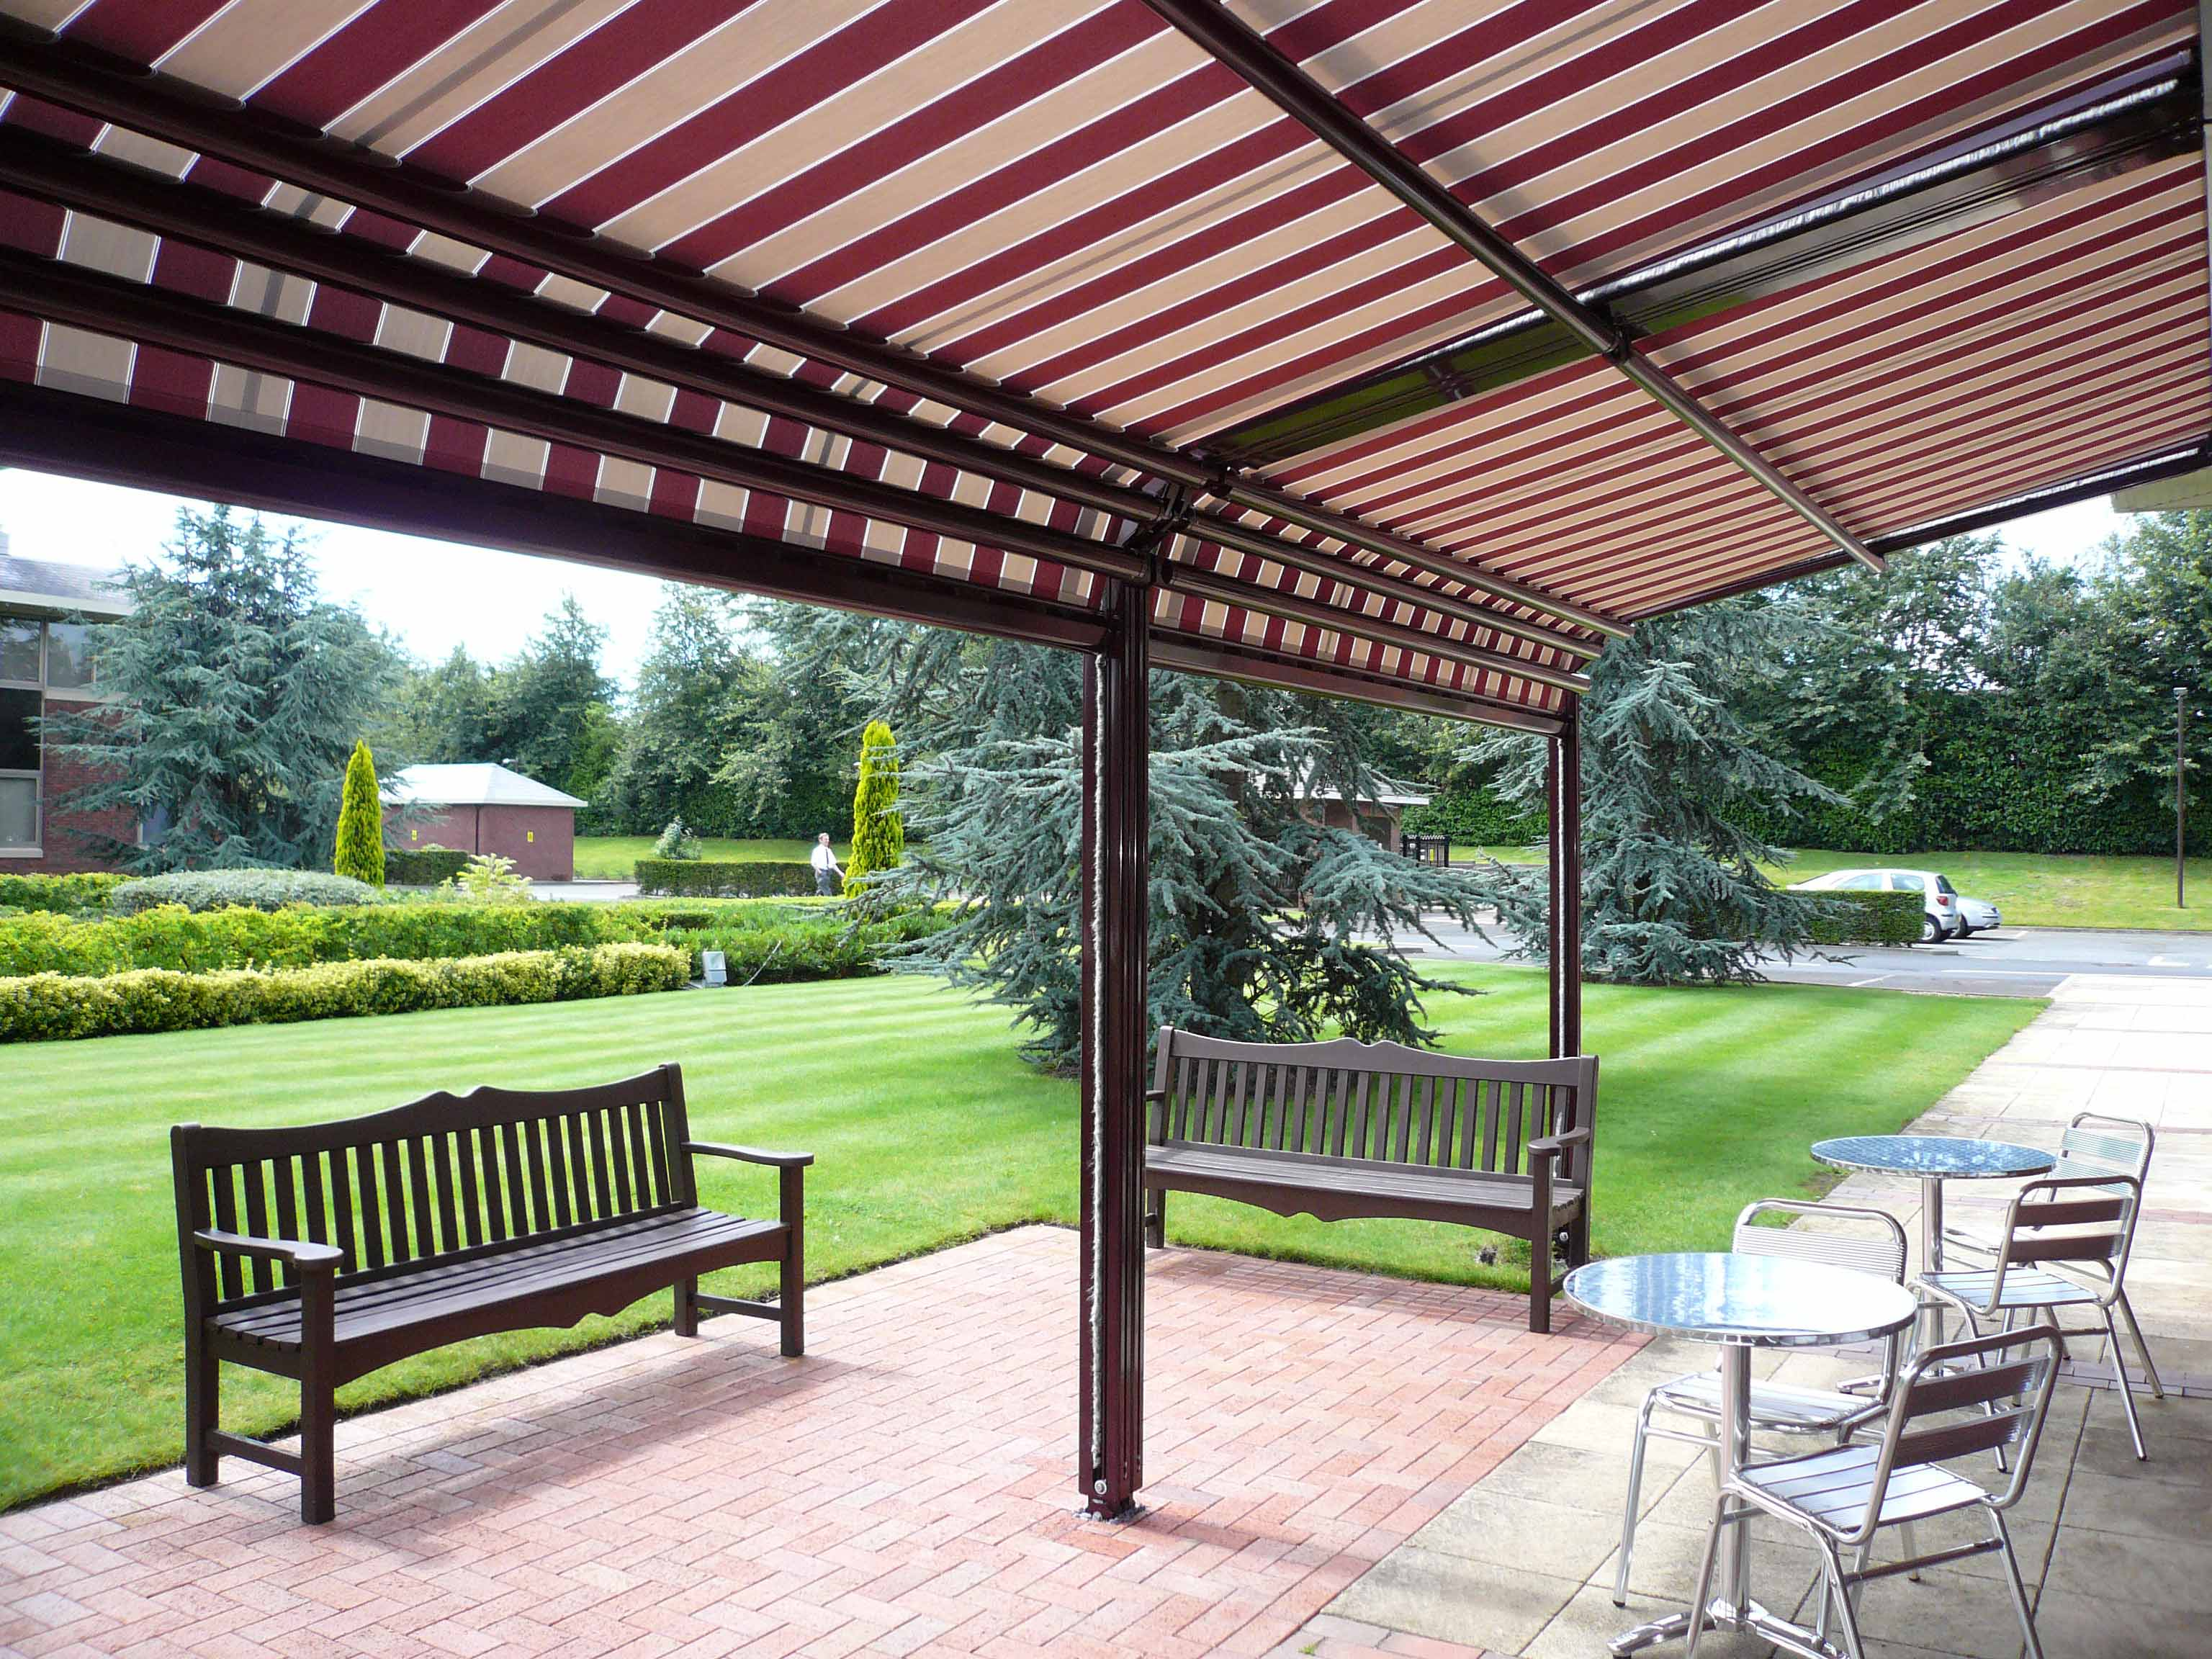 RETRACTABLE AWNINGS CFA CARIBBEAN LIMITED